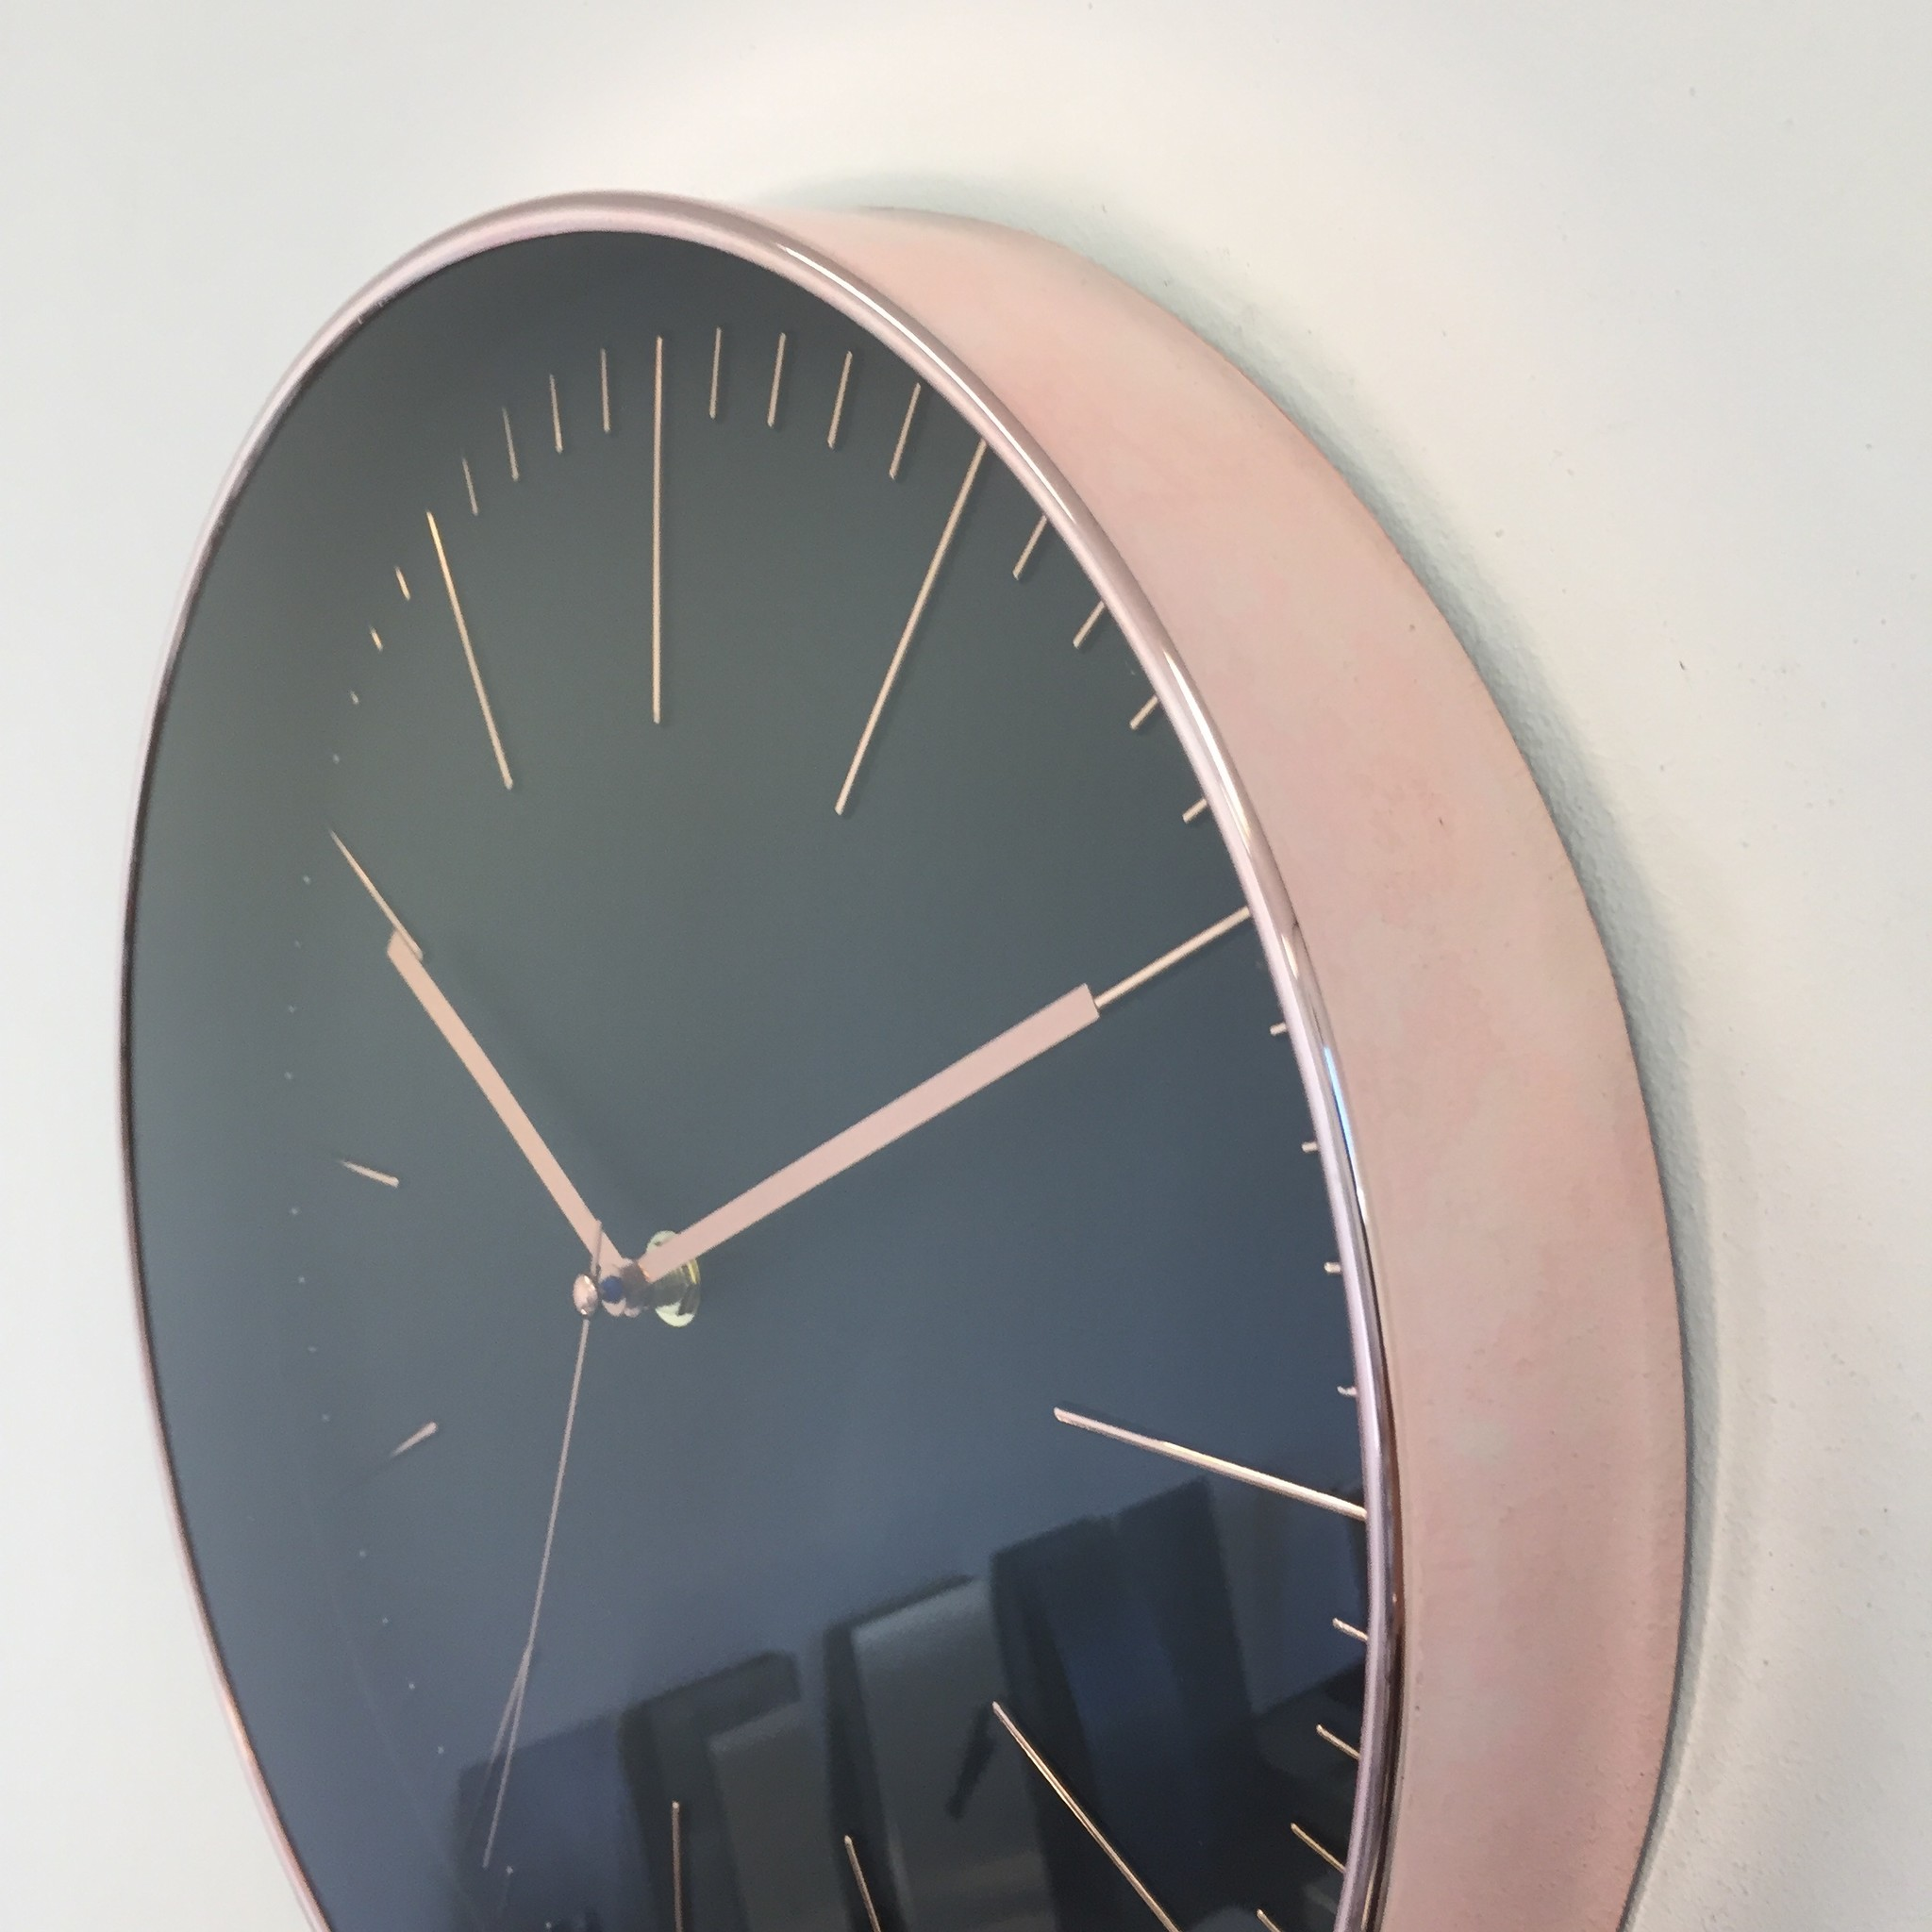 Saramax Wandklok COPPER ROSE Modern Design